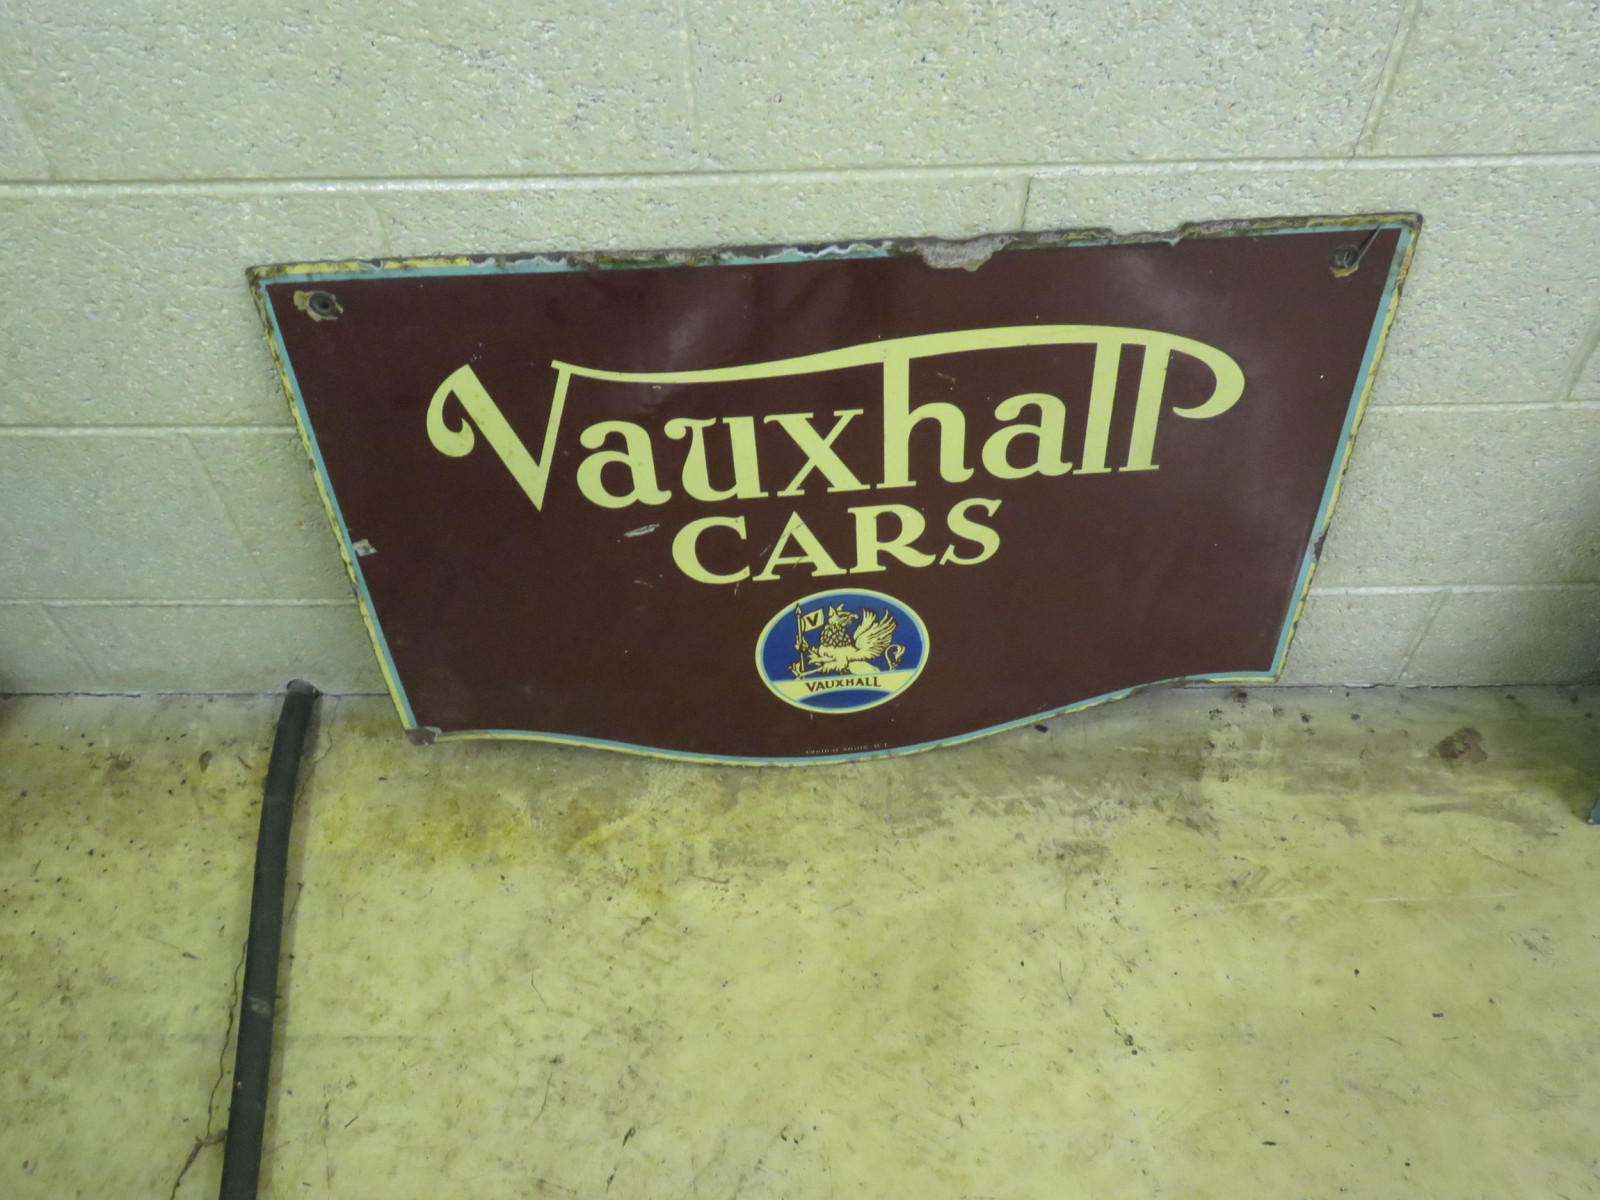 Vauxhaul Cars Porcelain Sign - Image 2